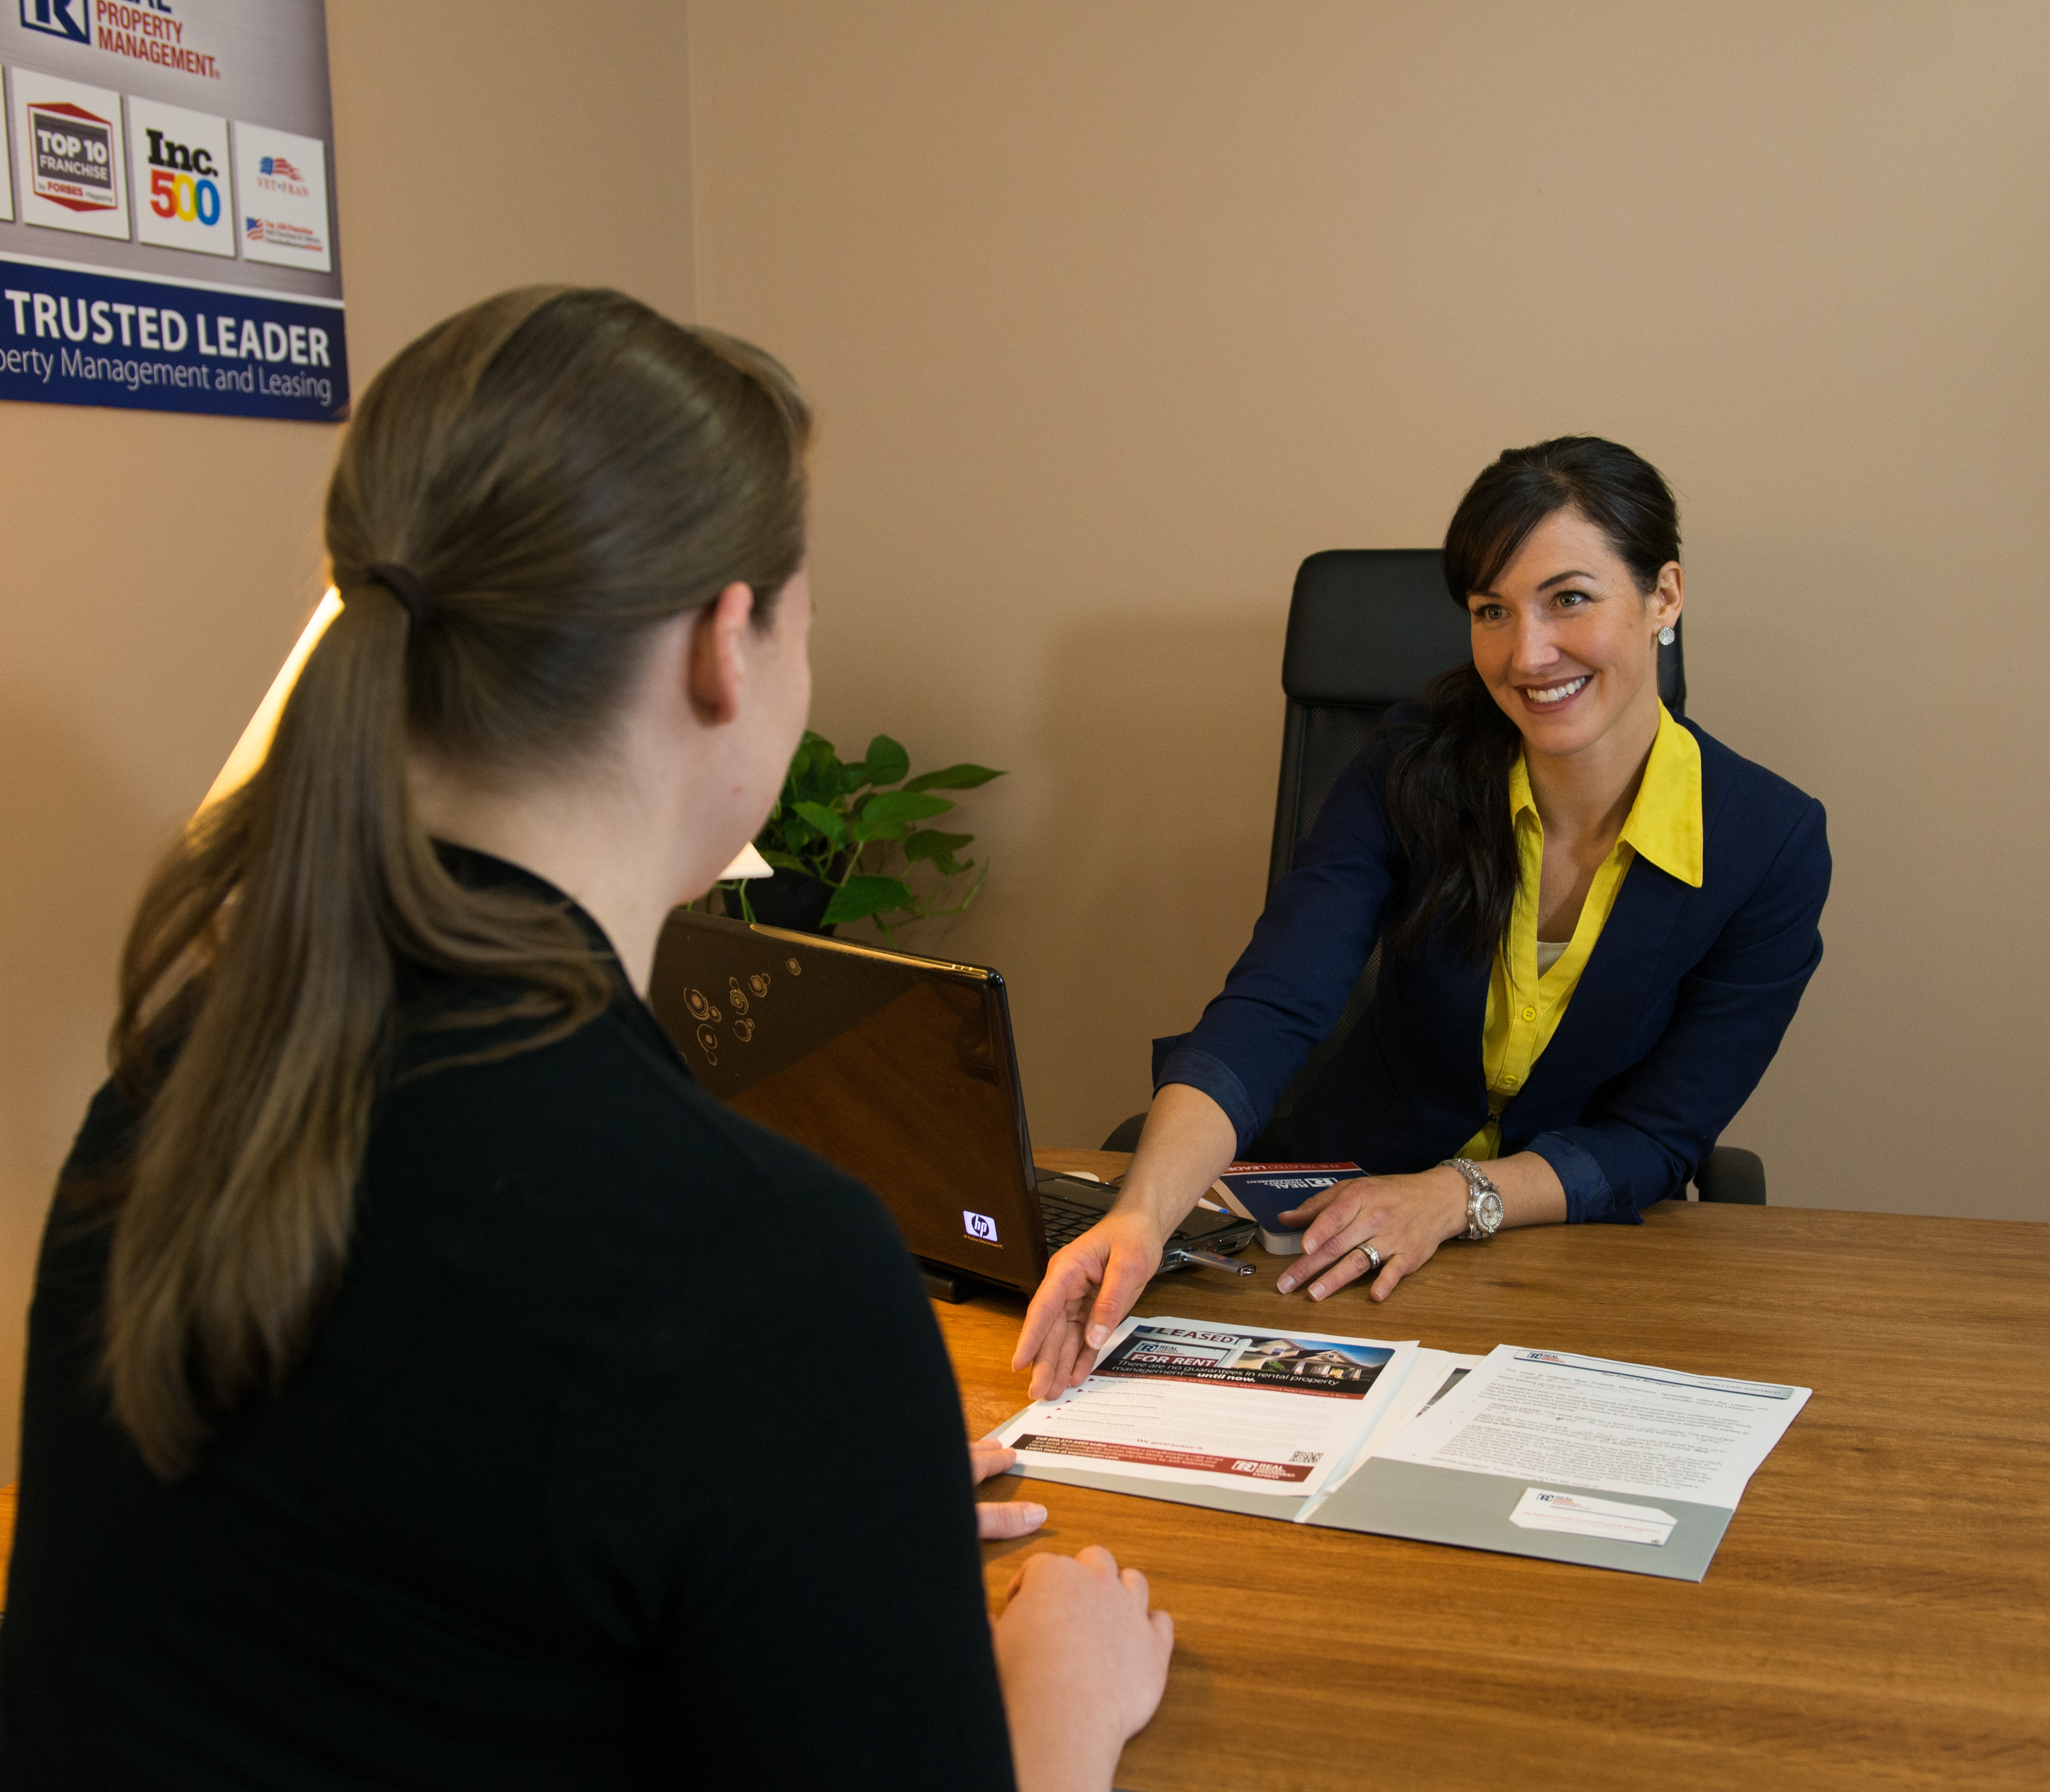 A Potential Resident Sitting at a Desk with a Real Property Management Raleigh Manager